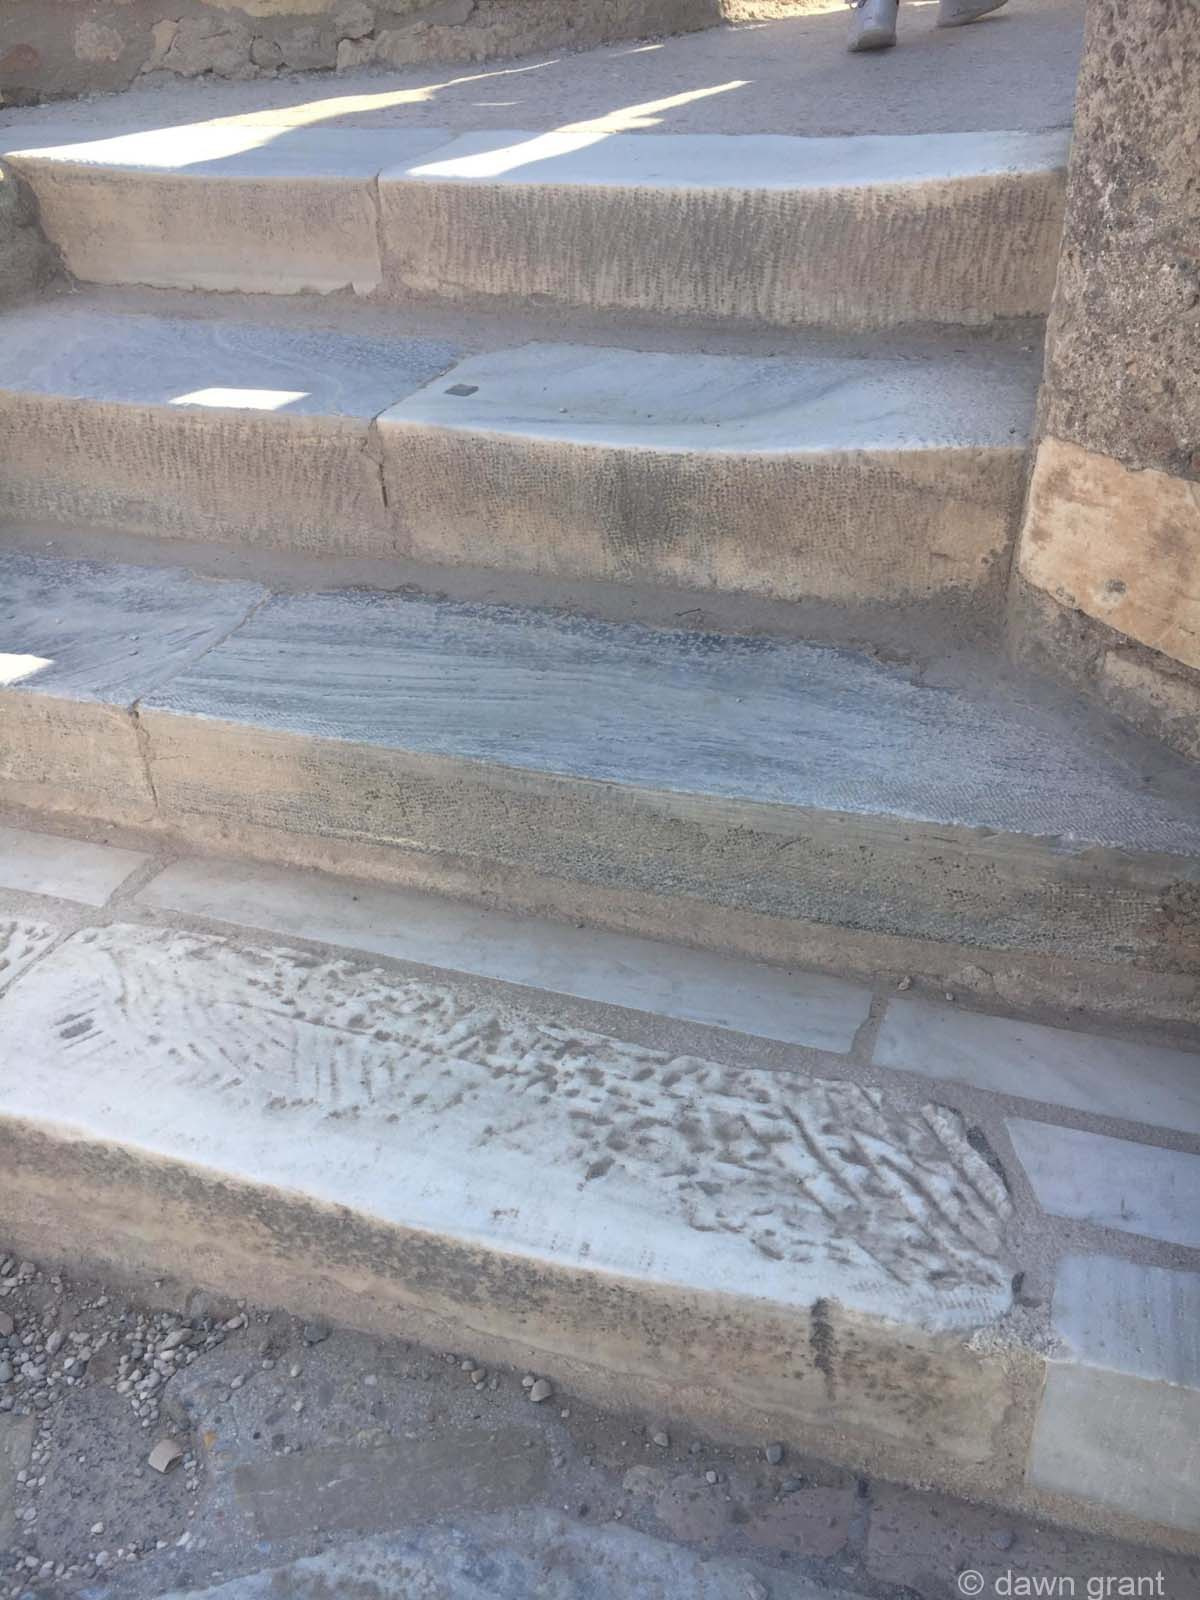 A close look at stone stairs that have been worn down by feet climbing them over centuries.